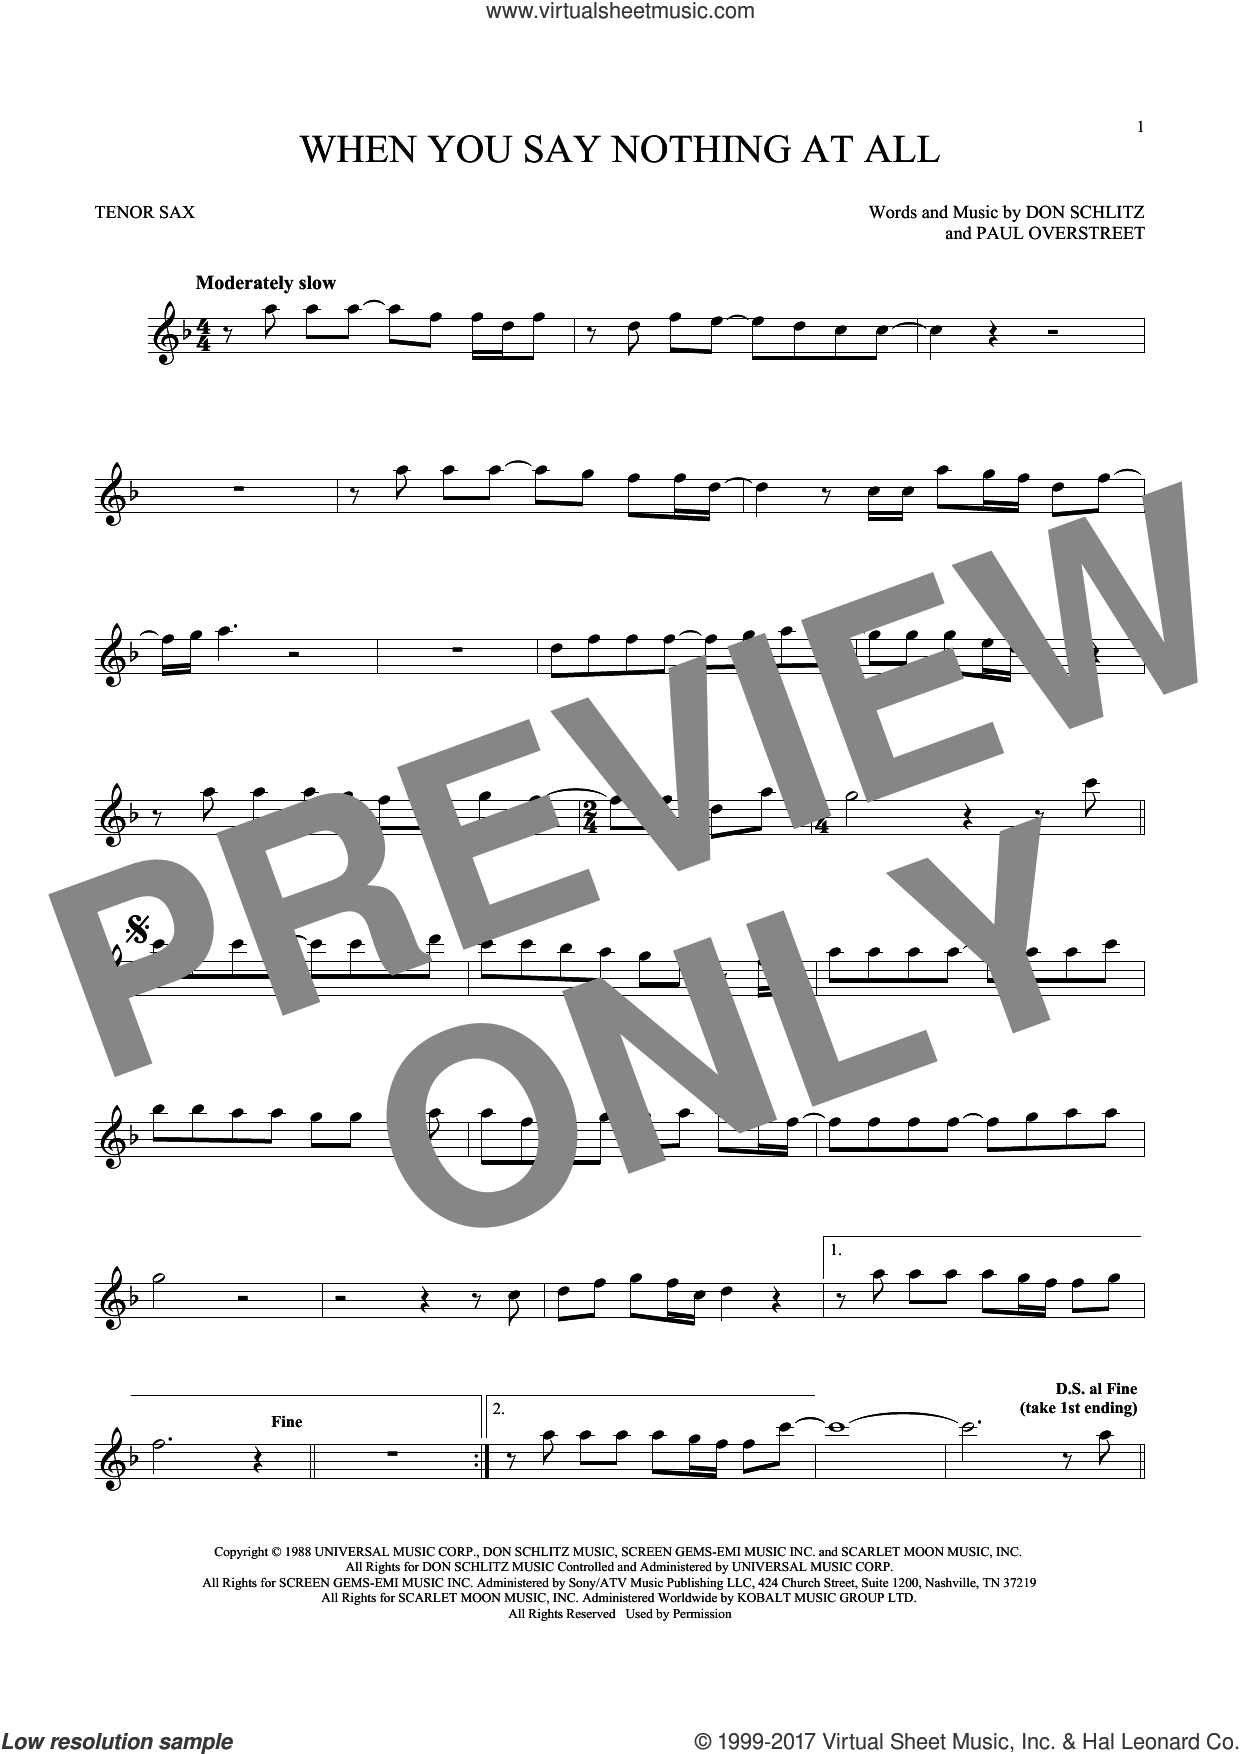 When You Say Nothing At All sheet music for tenor saxophone solo ( Sax) by Alison Krauss & Union Station, Keith Whitley, Don Schlitz and Paul Overstreet, wedding score, intermediate tenor saxophone ( Sax)